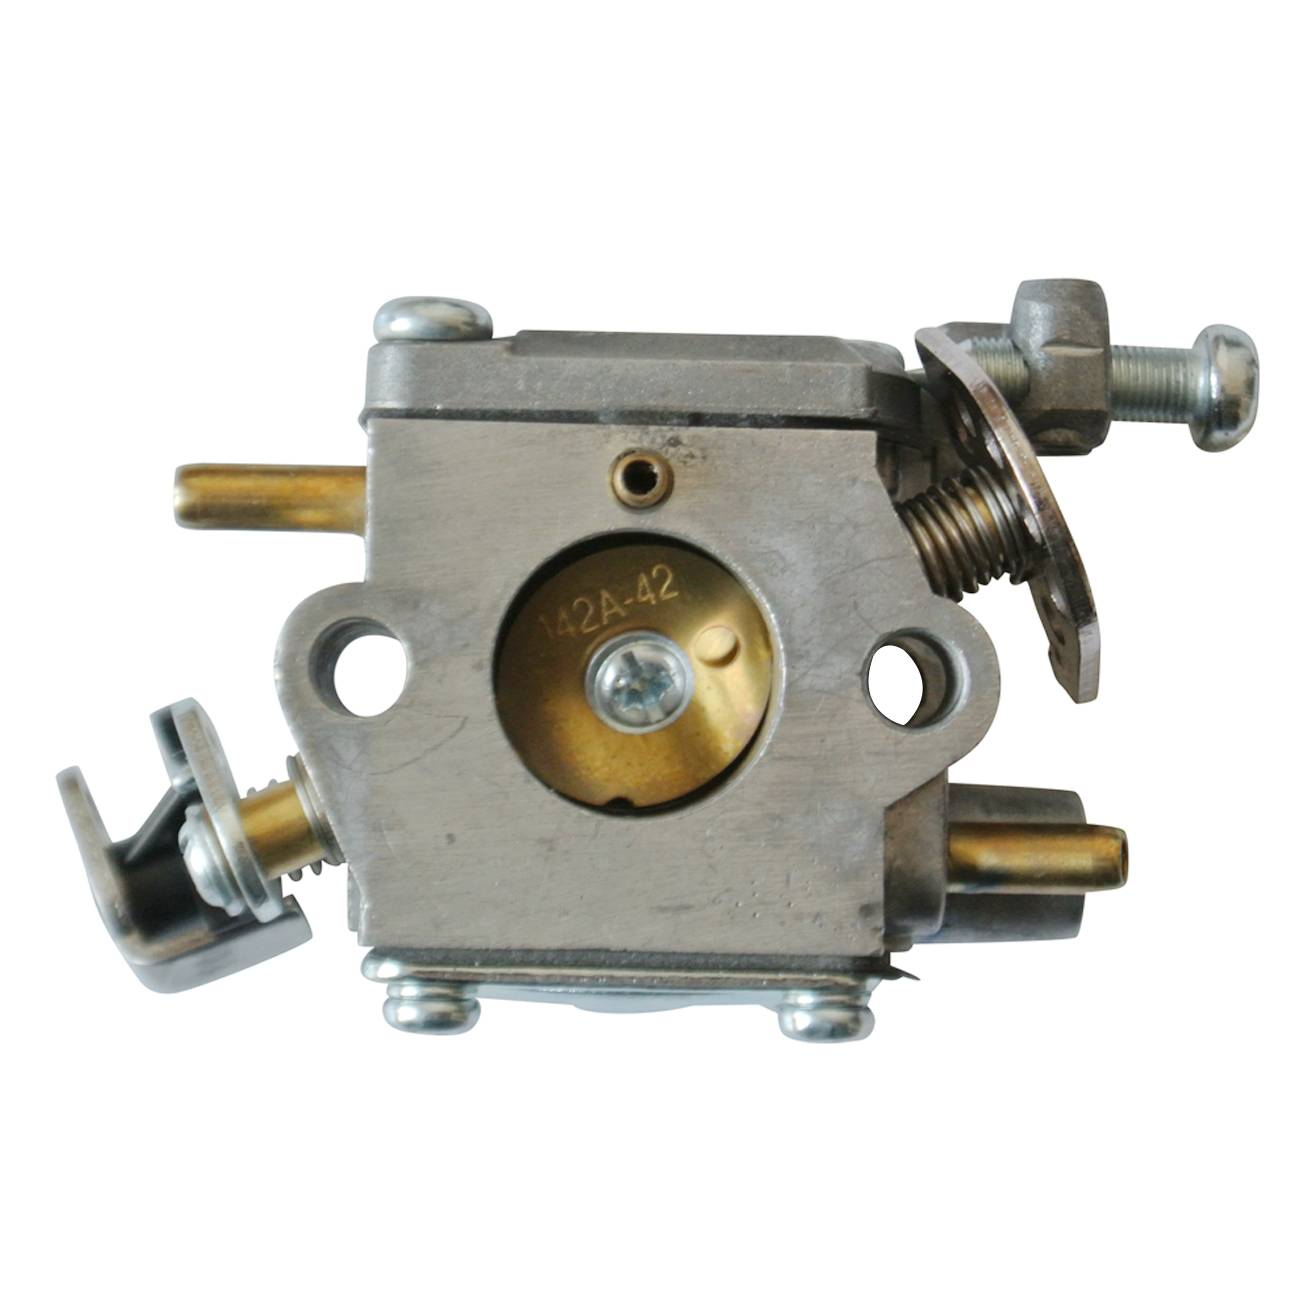 New Carburetor For Chainsaw 309362001 309362003 Homelite 35cc 38cc 42cc Carb